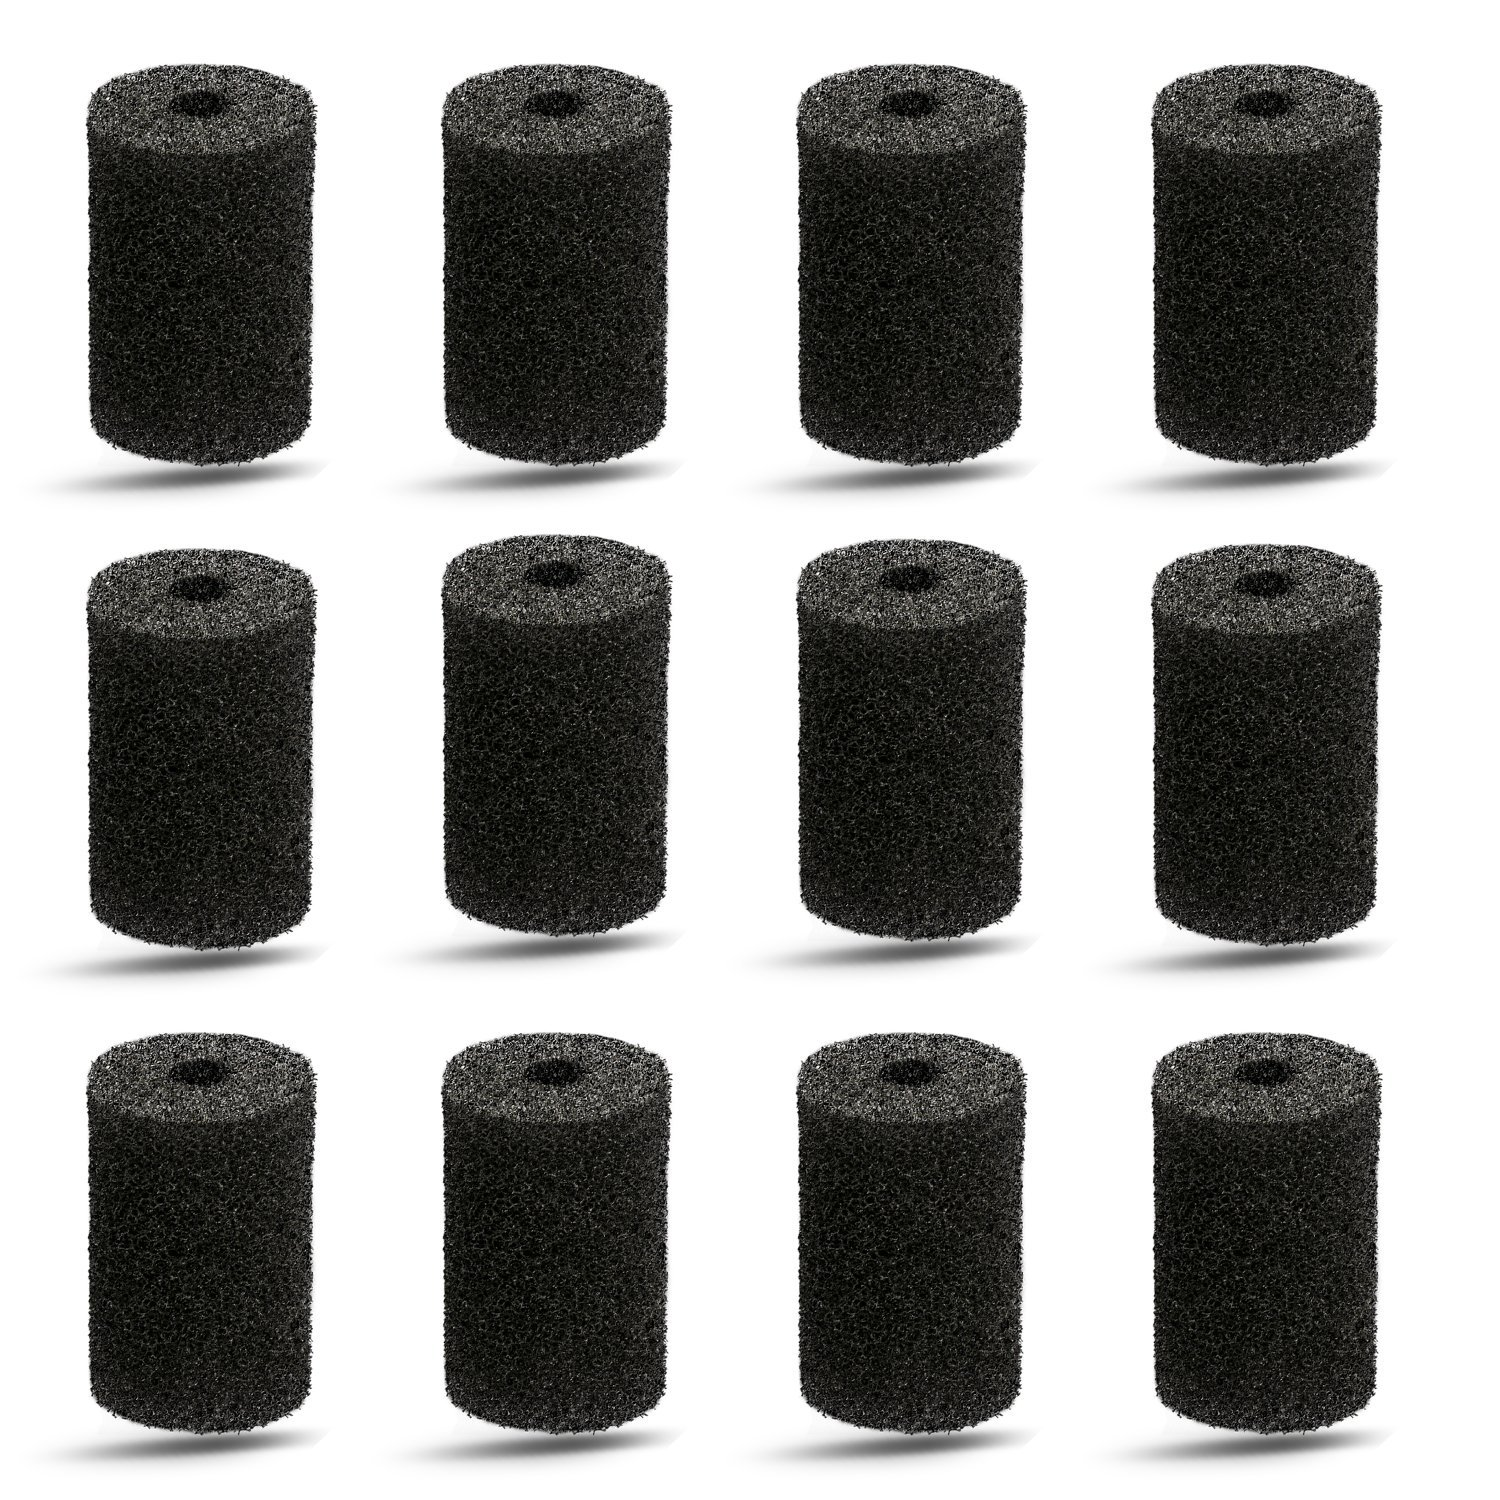 Pool Hose Tail scrubbers,12 Pack Tail Sweeps Scrubber Replacement High Density Sweep Hose Scrubber Pool Pre-Filter Intake Sponge as Polaris Pool Cleaner Parts Fits for Polaris Vac-Sweep Pool Cleaner